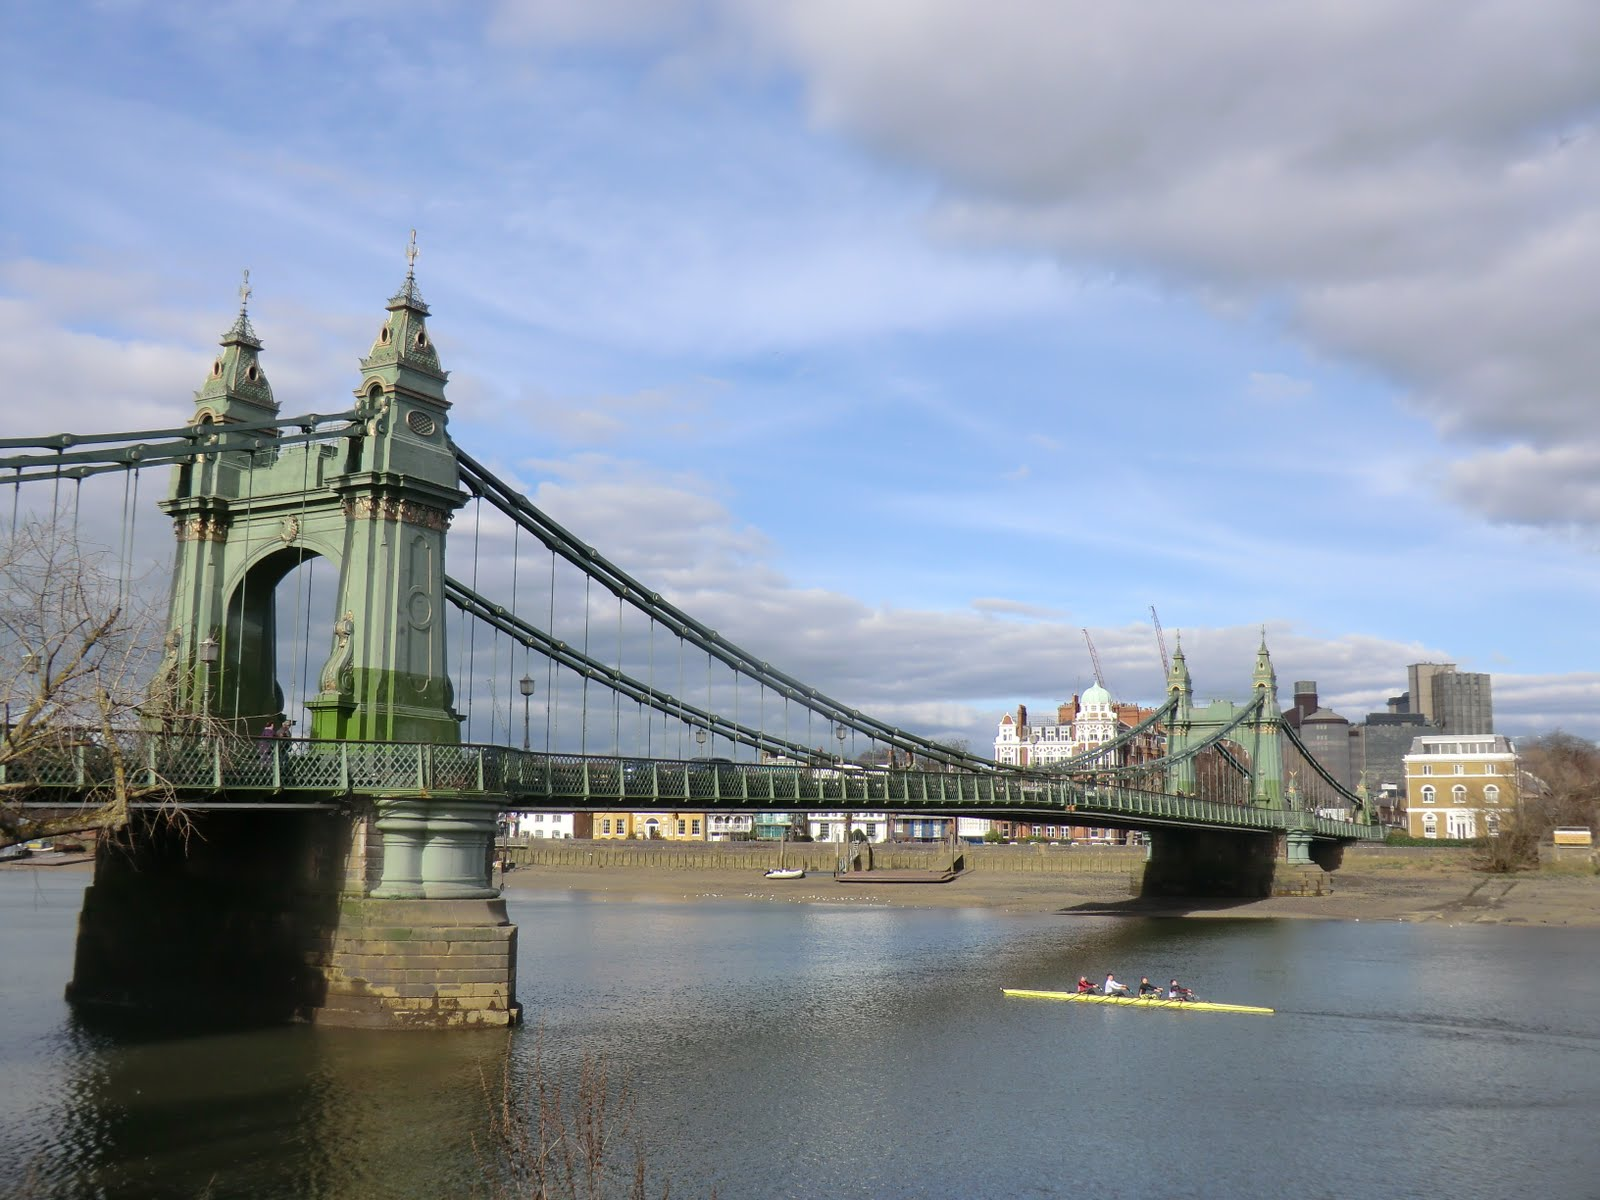 CIMG2806 Hammersmith Bridge from the south bank